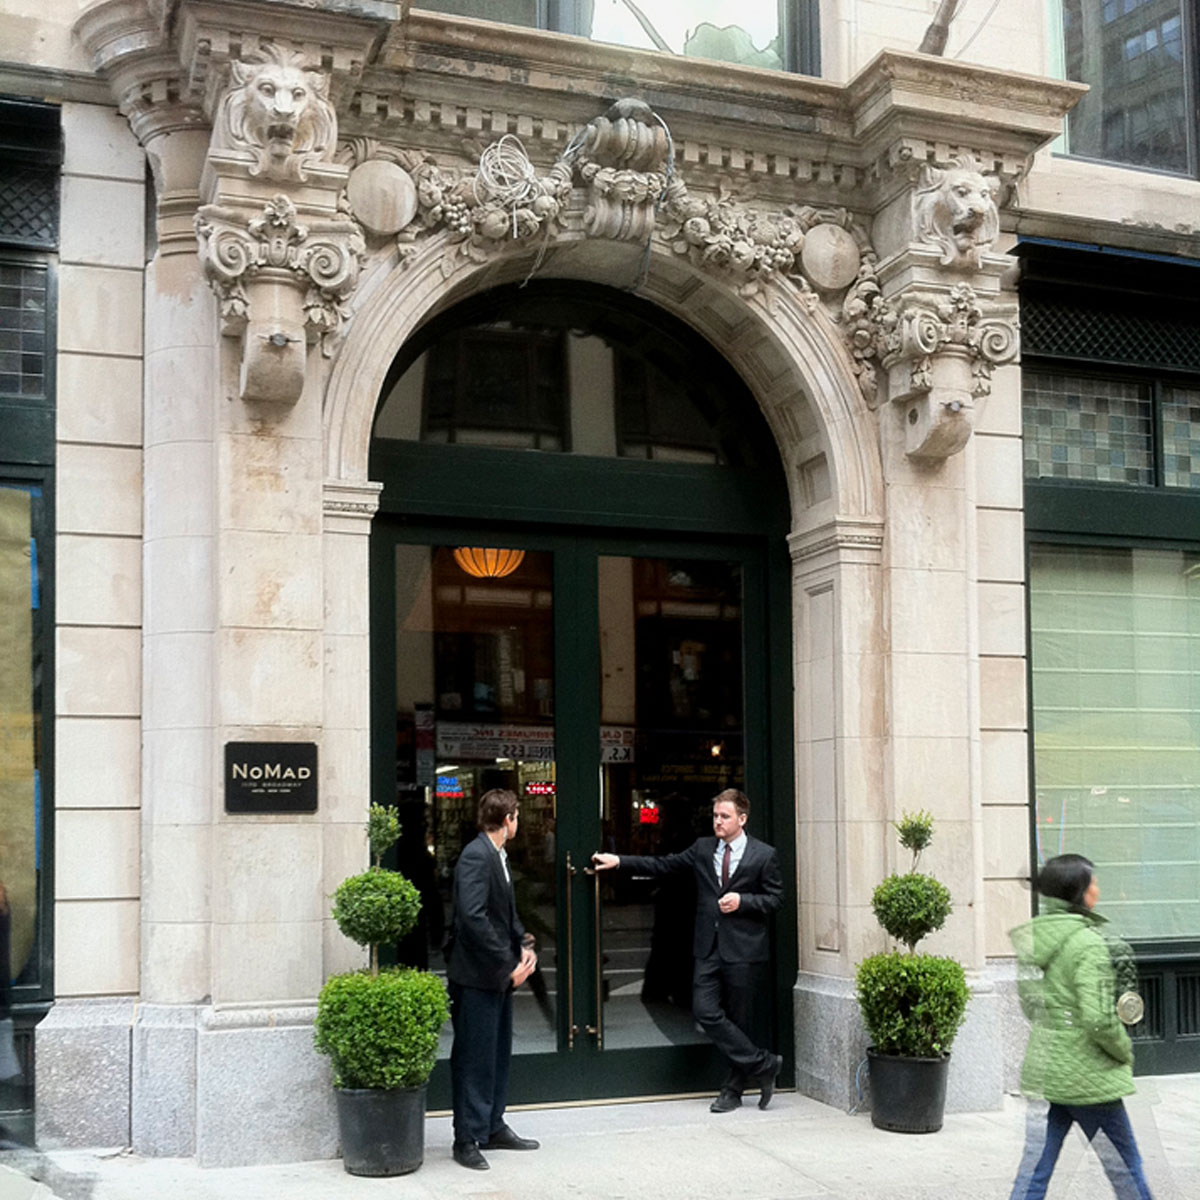 NoMad Hotel Ownership Resolves Disputes, Poised for Season of Continued Expansion